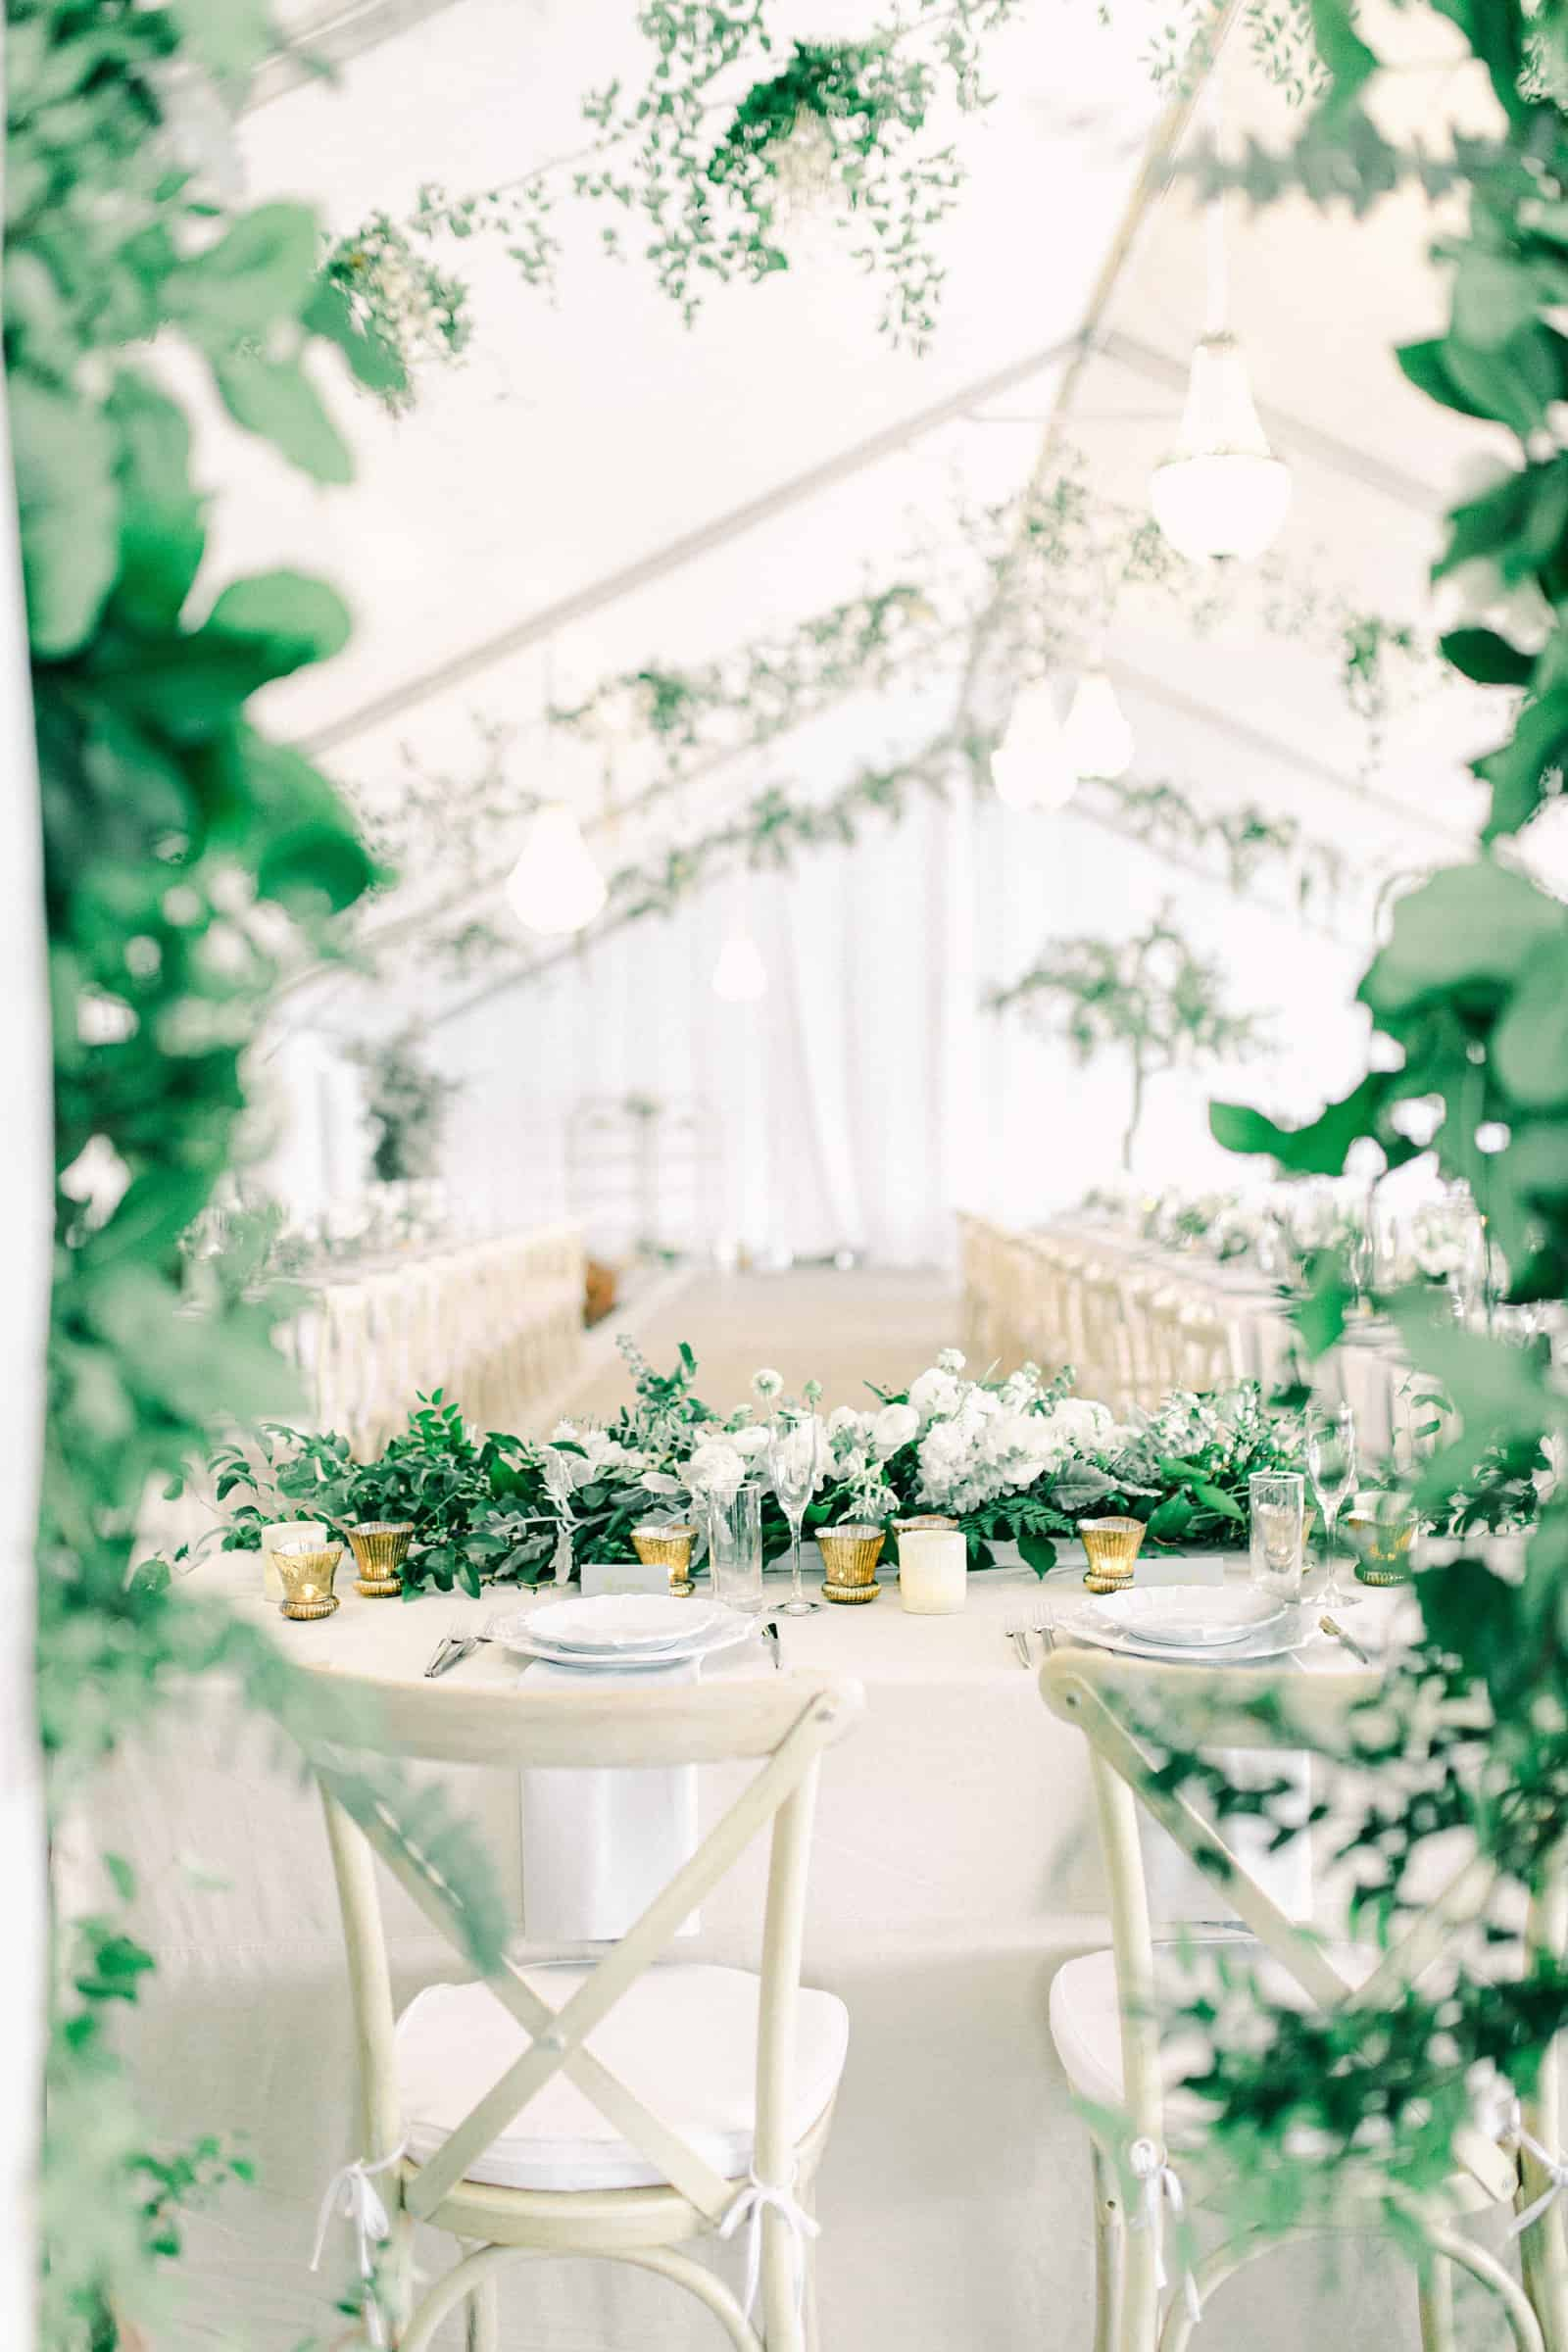 Luxury winter wedding inside white tent reception with greenery floral garland with white roses and tables with centerpieces